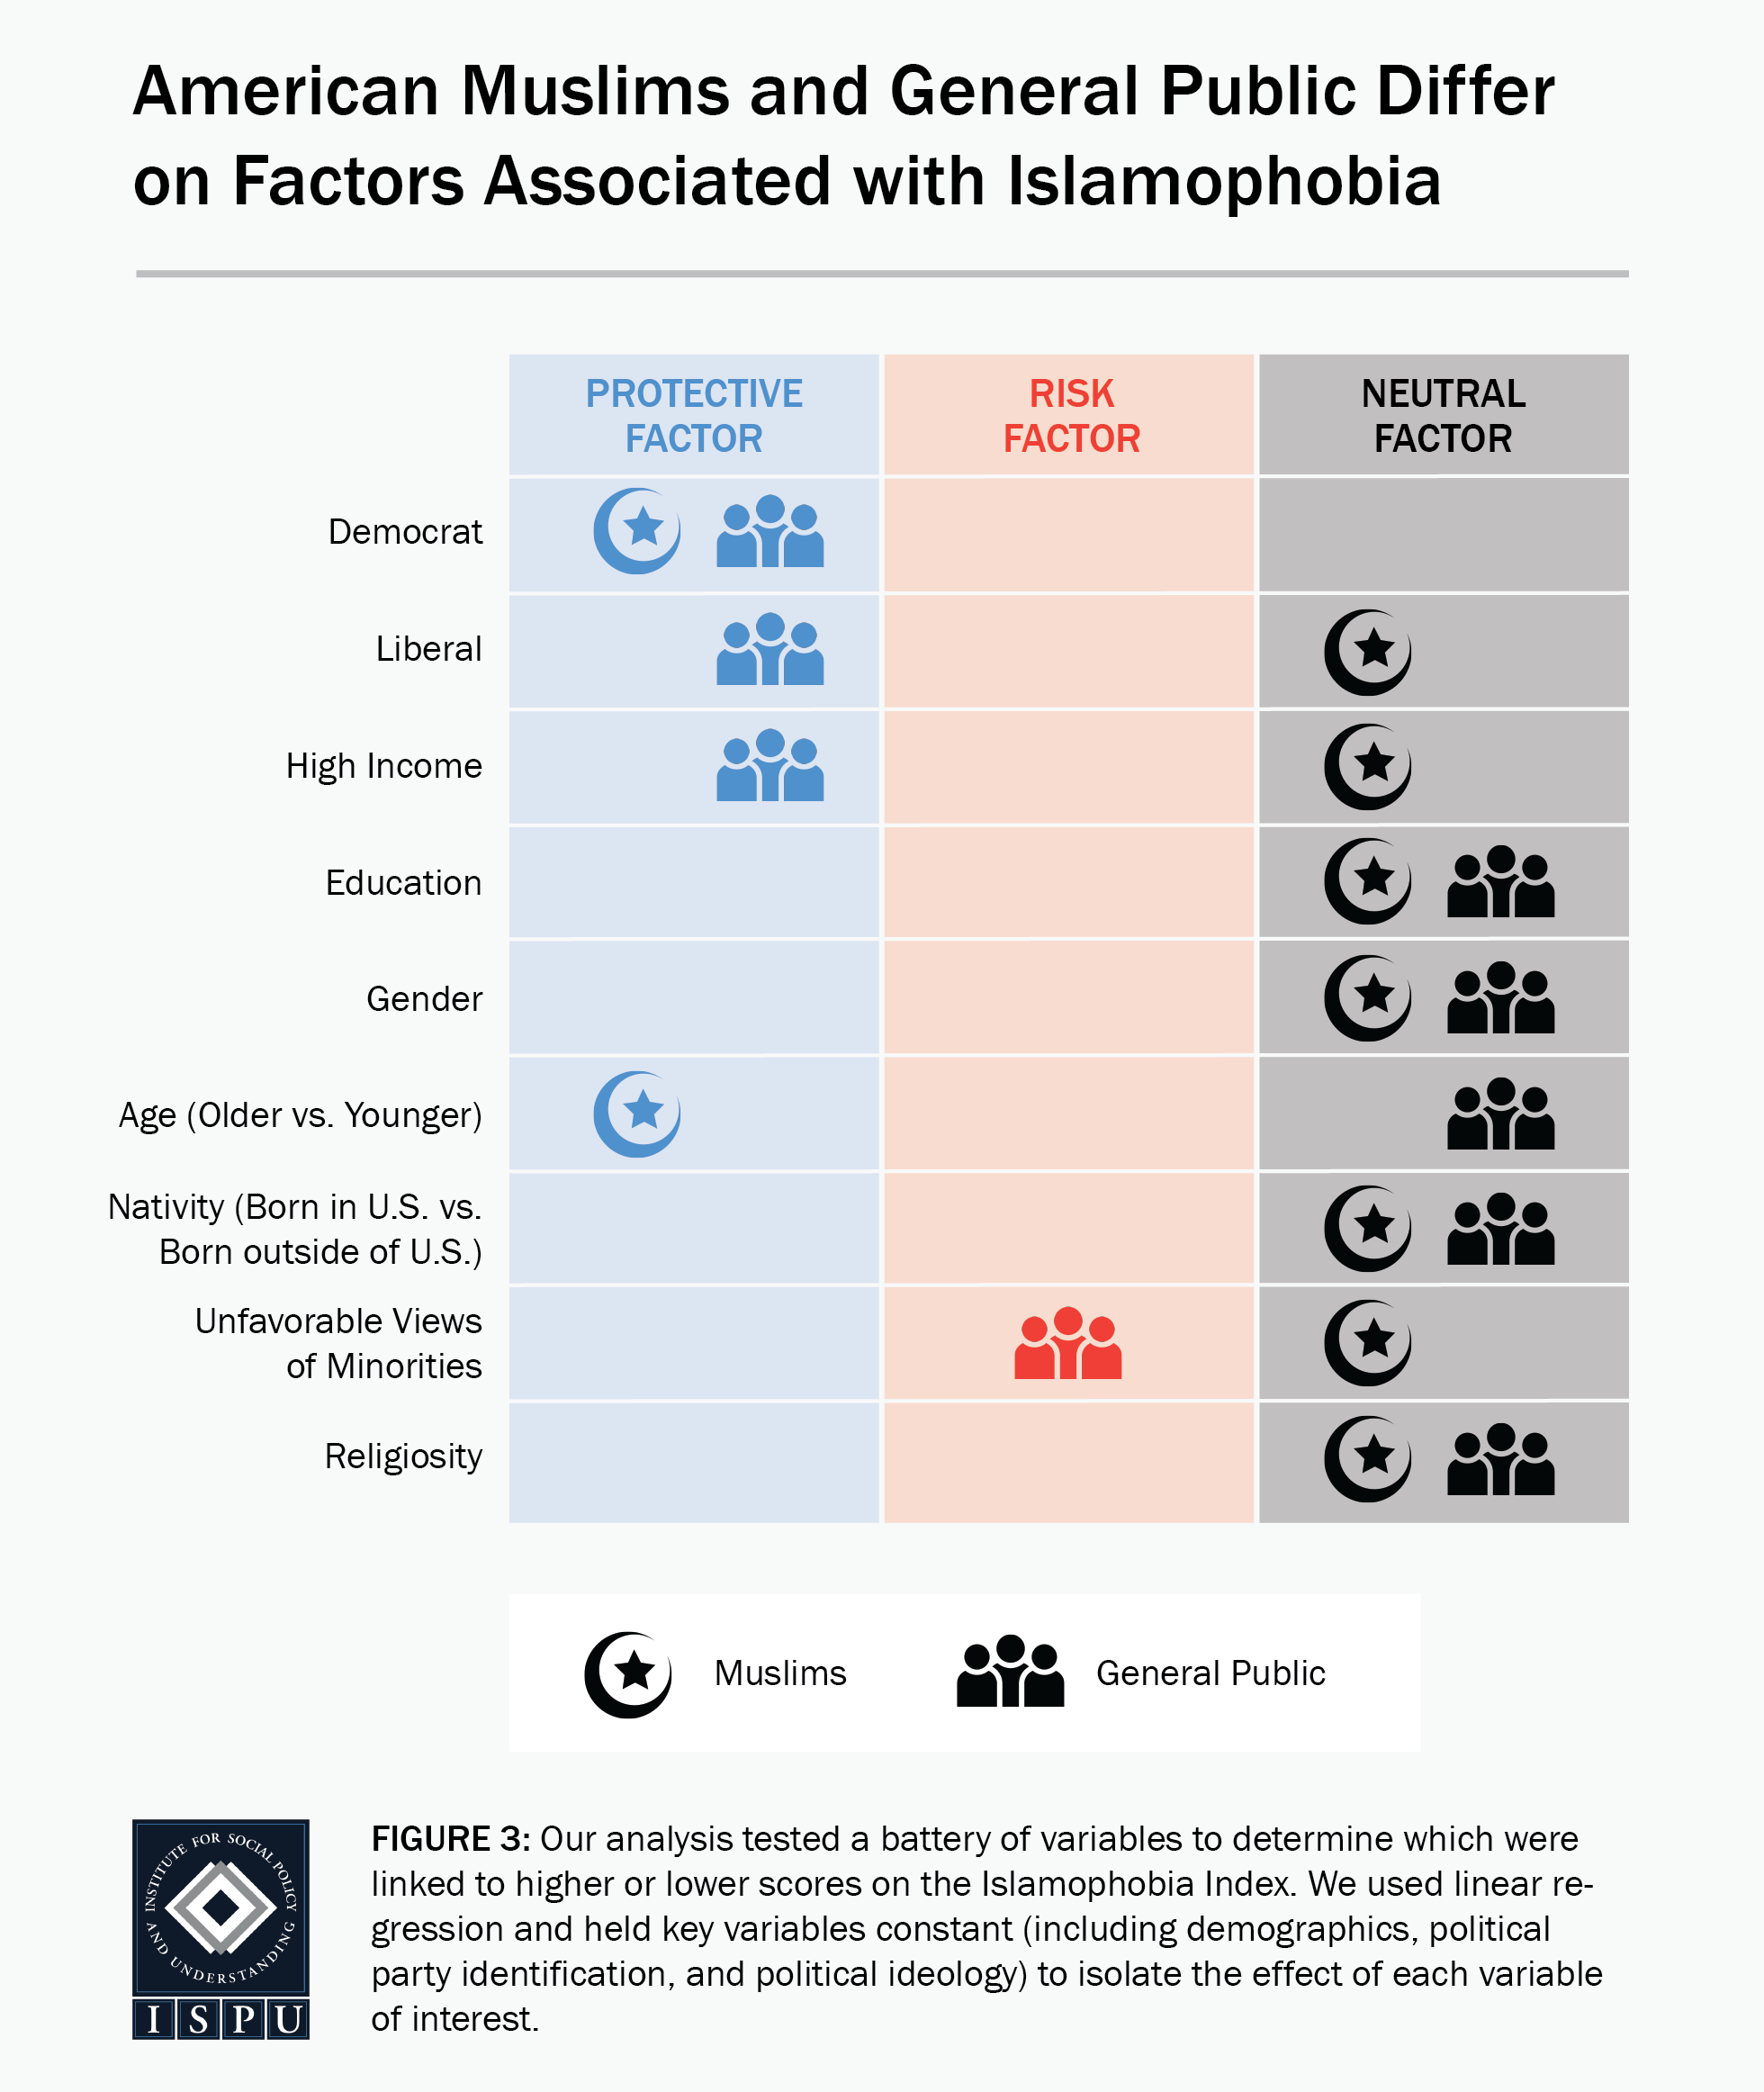 Figure 3: A table showing that American Muslims and the general public differ on factors associated with Islamophobia